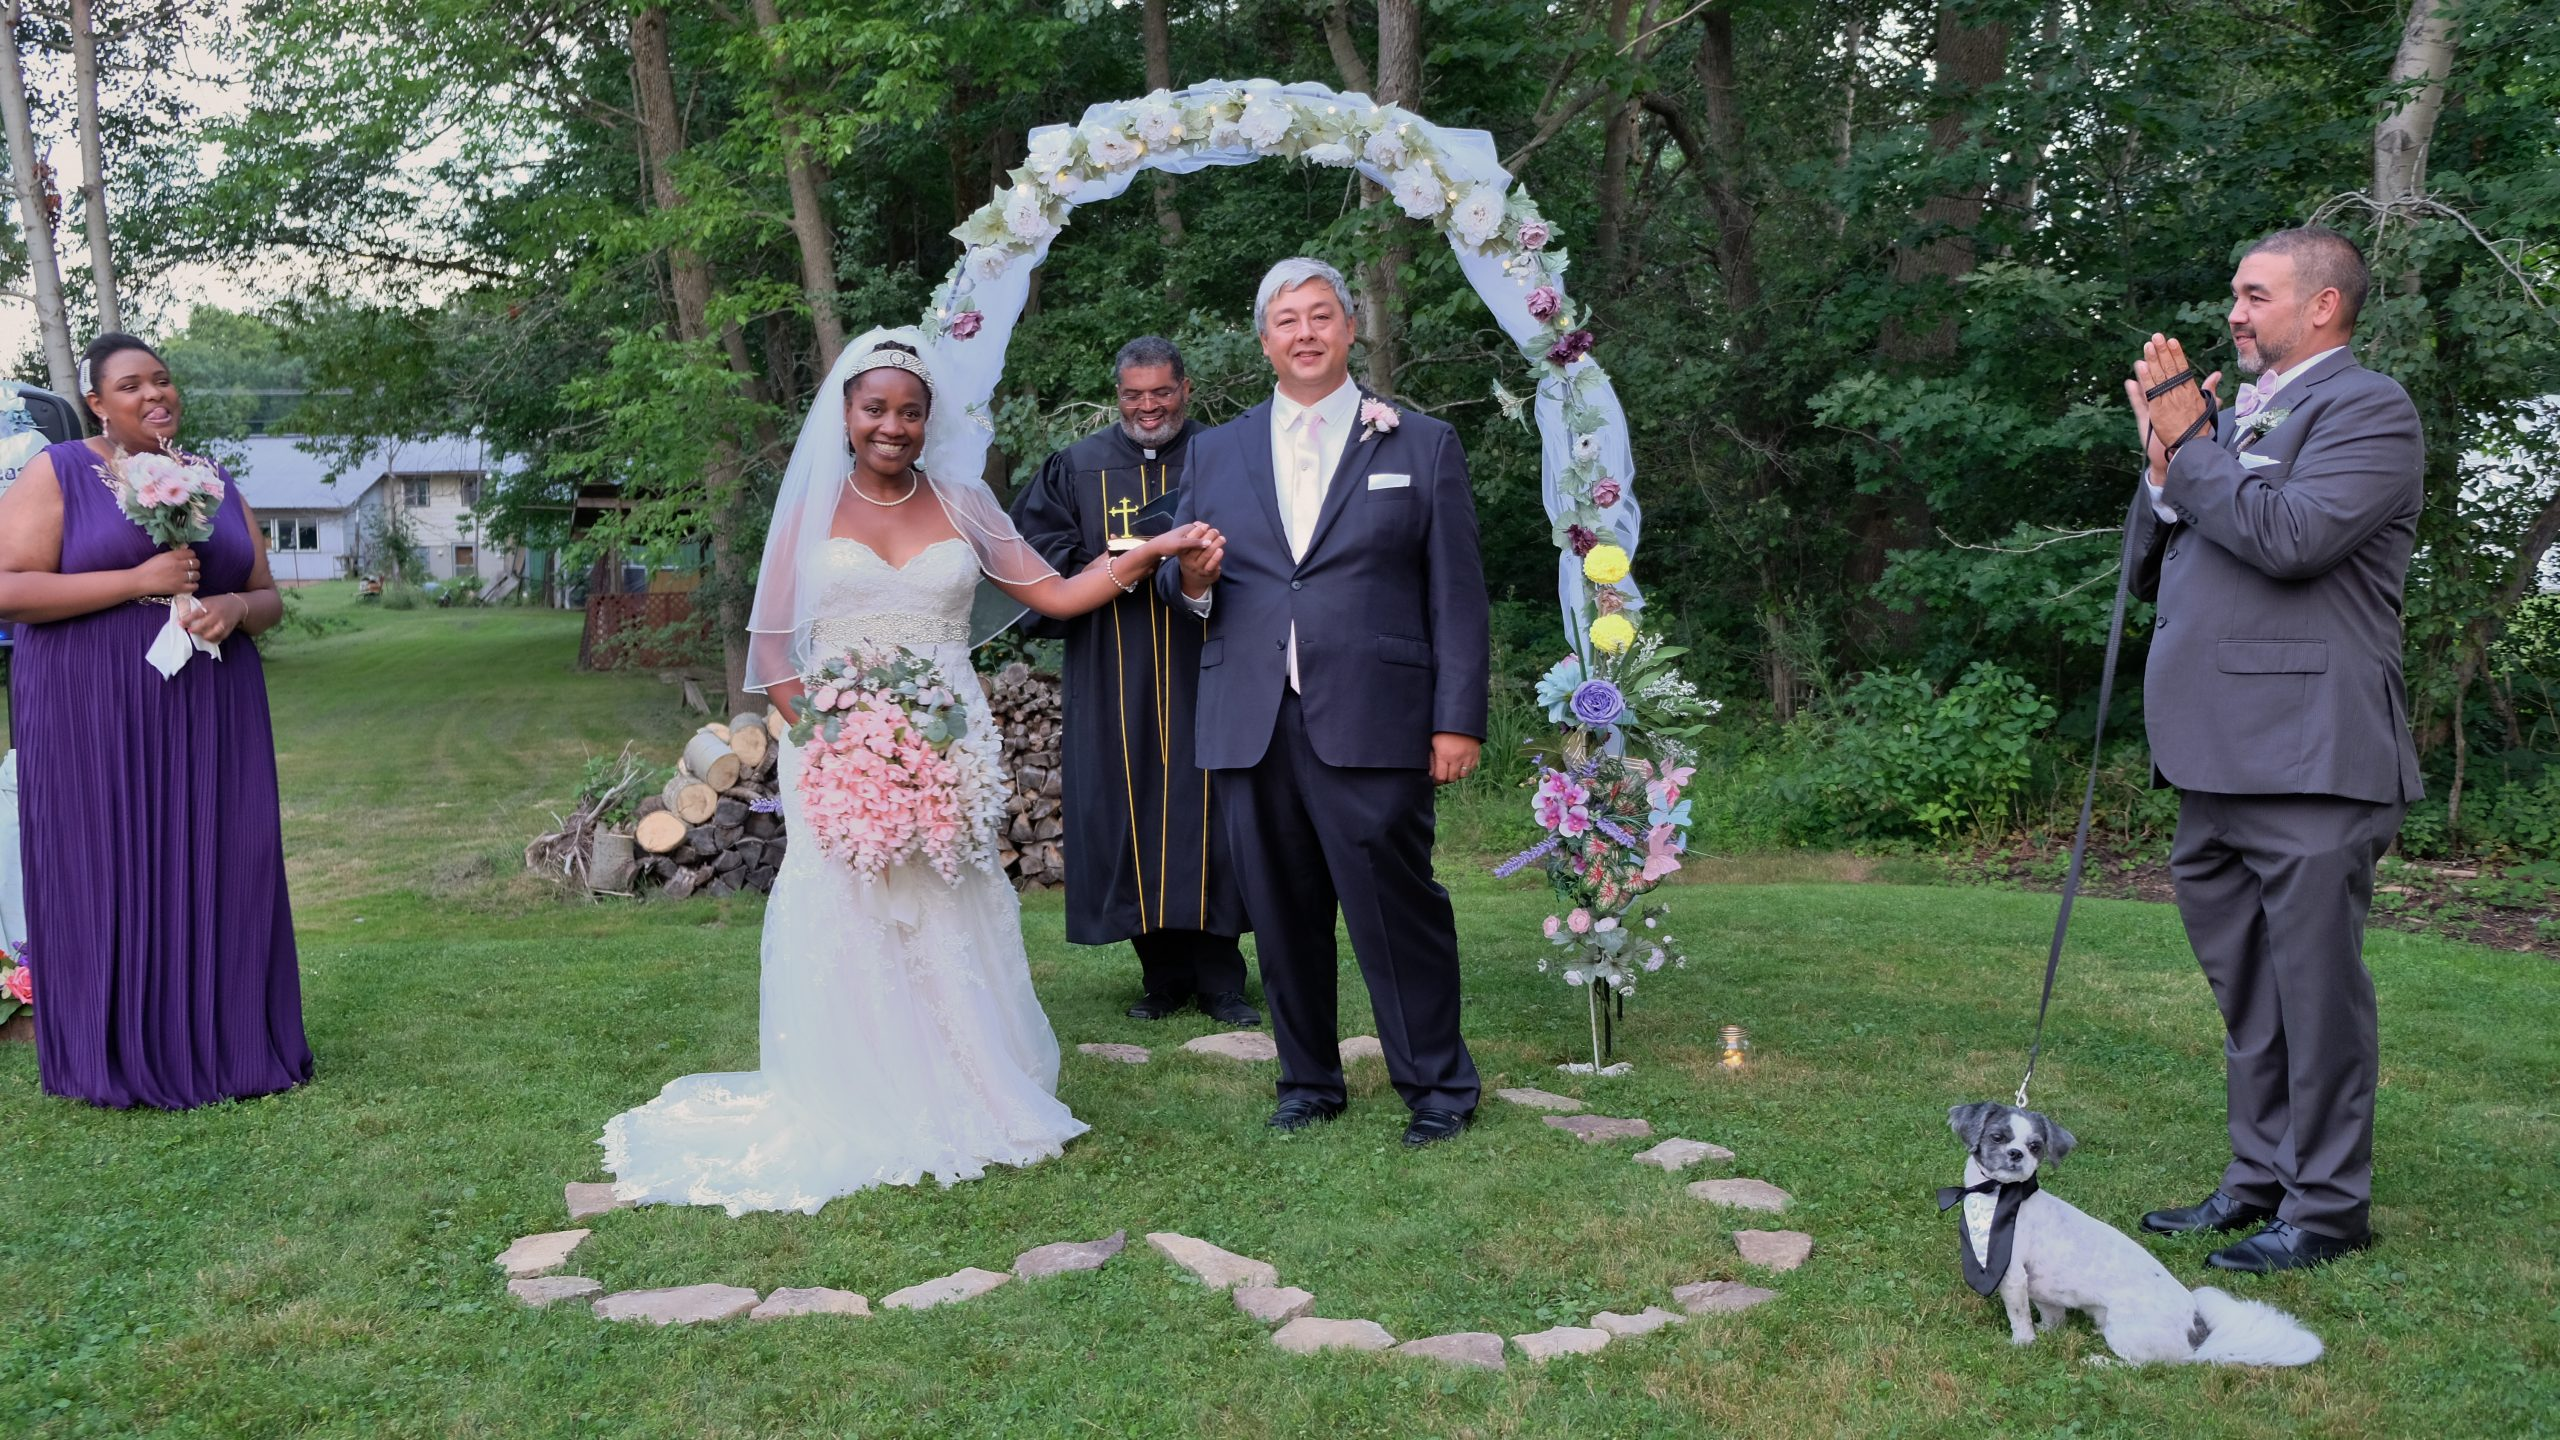 Covid 19 Weddings Happily And Safely Ever After Citynews Toronto